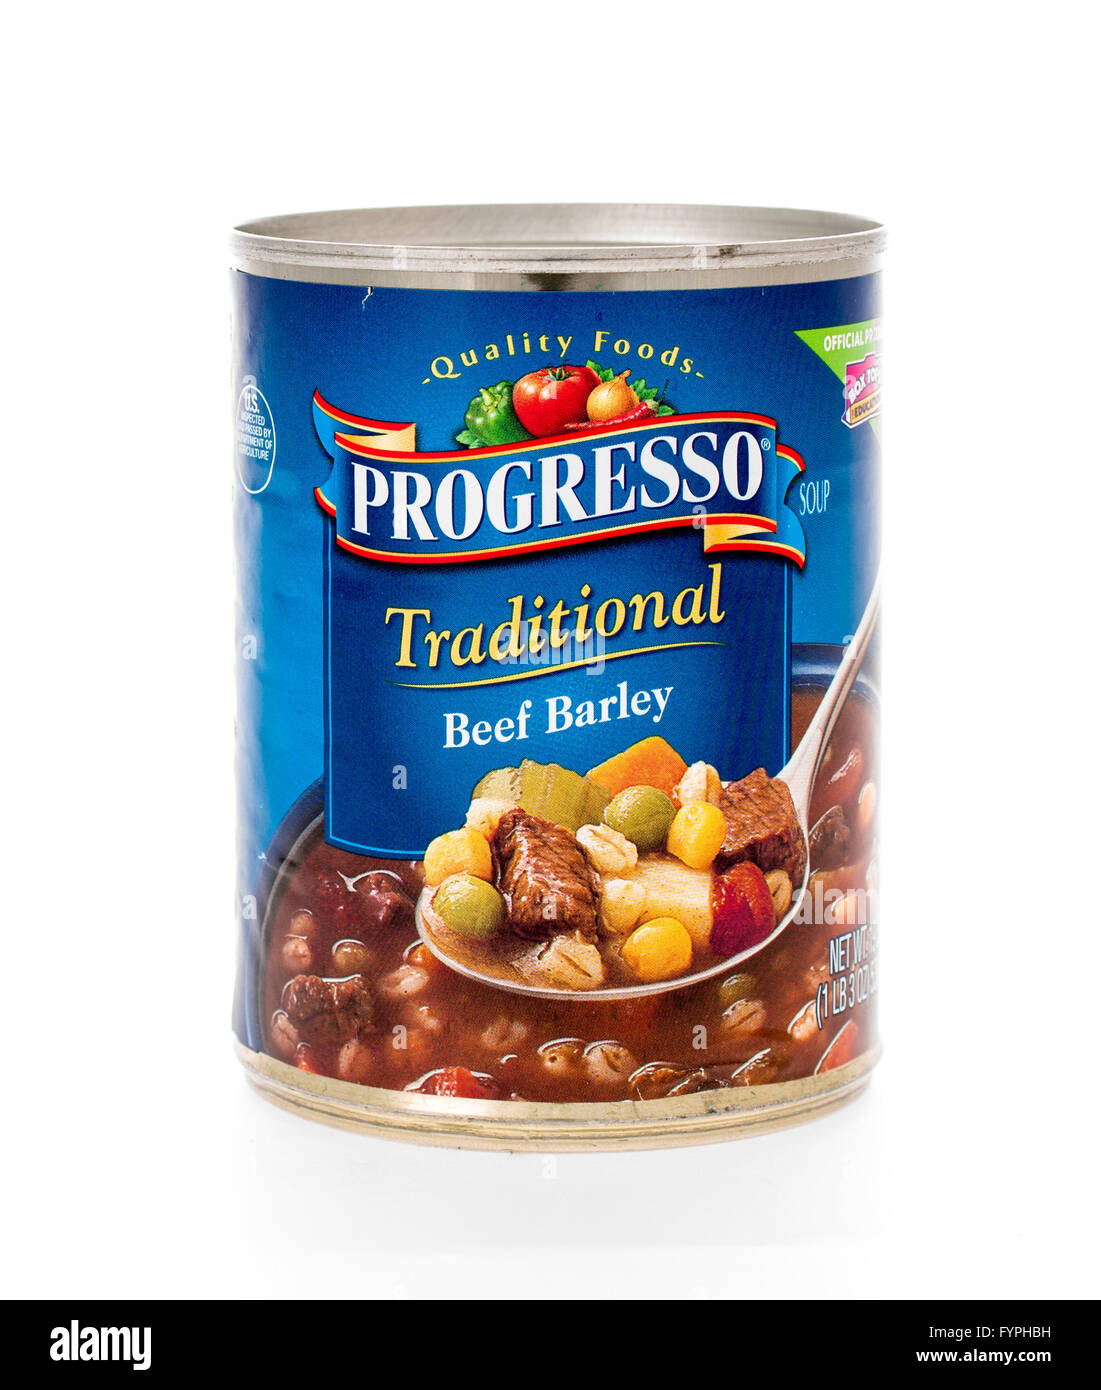 Winneconne, WI - 7 February 2015:  Can of Progresso Traditional Beef Barley soup. - Stock Image